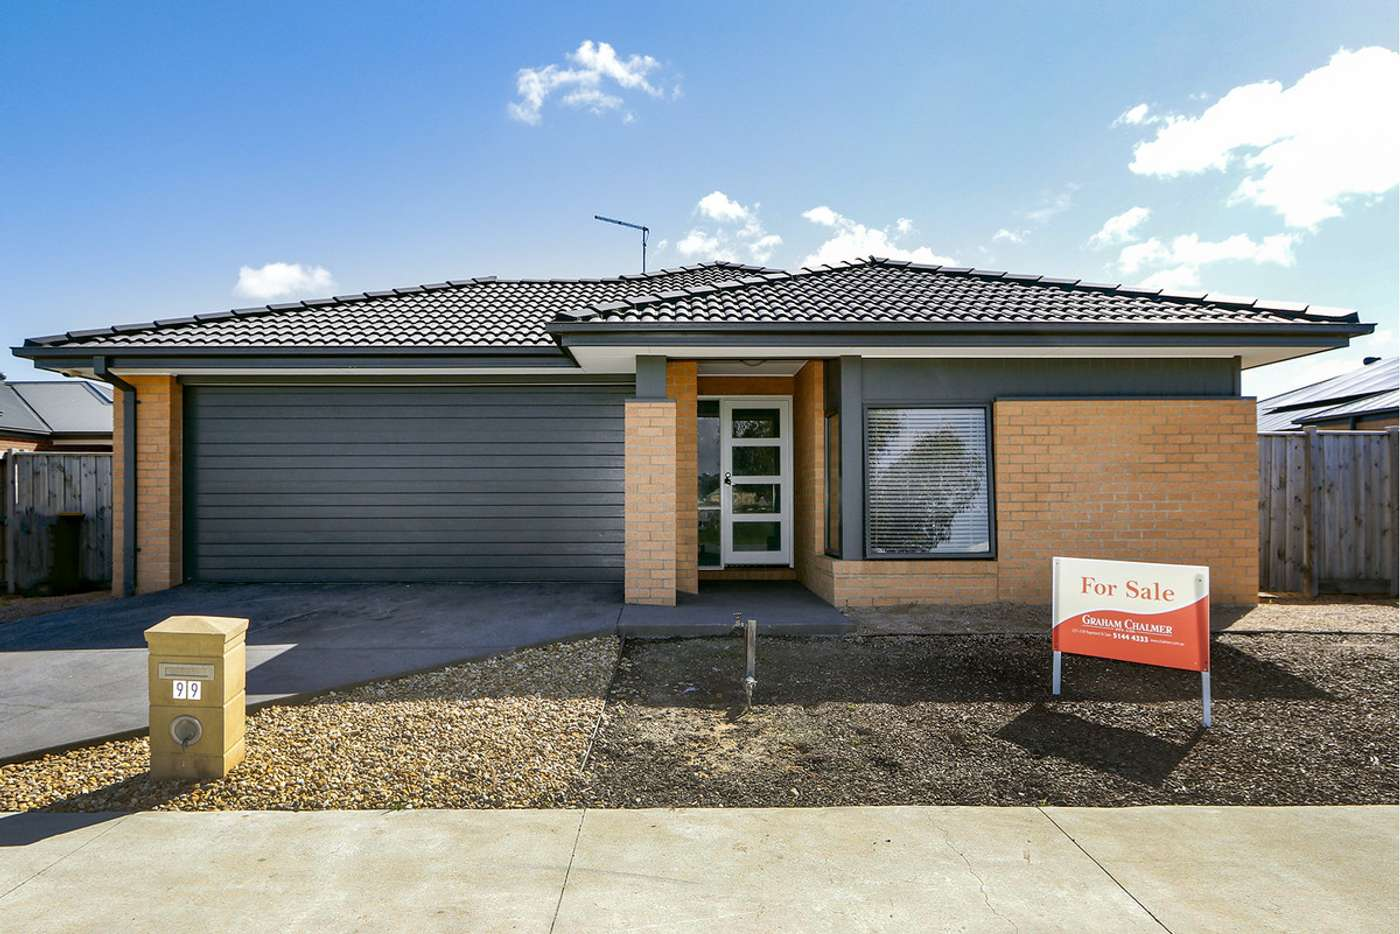 Main view of Homely house listing, 99 Hobson Street, Stratford VIC 3862